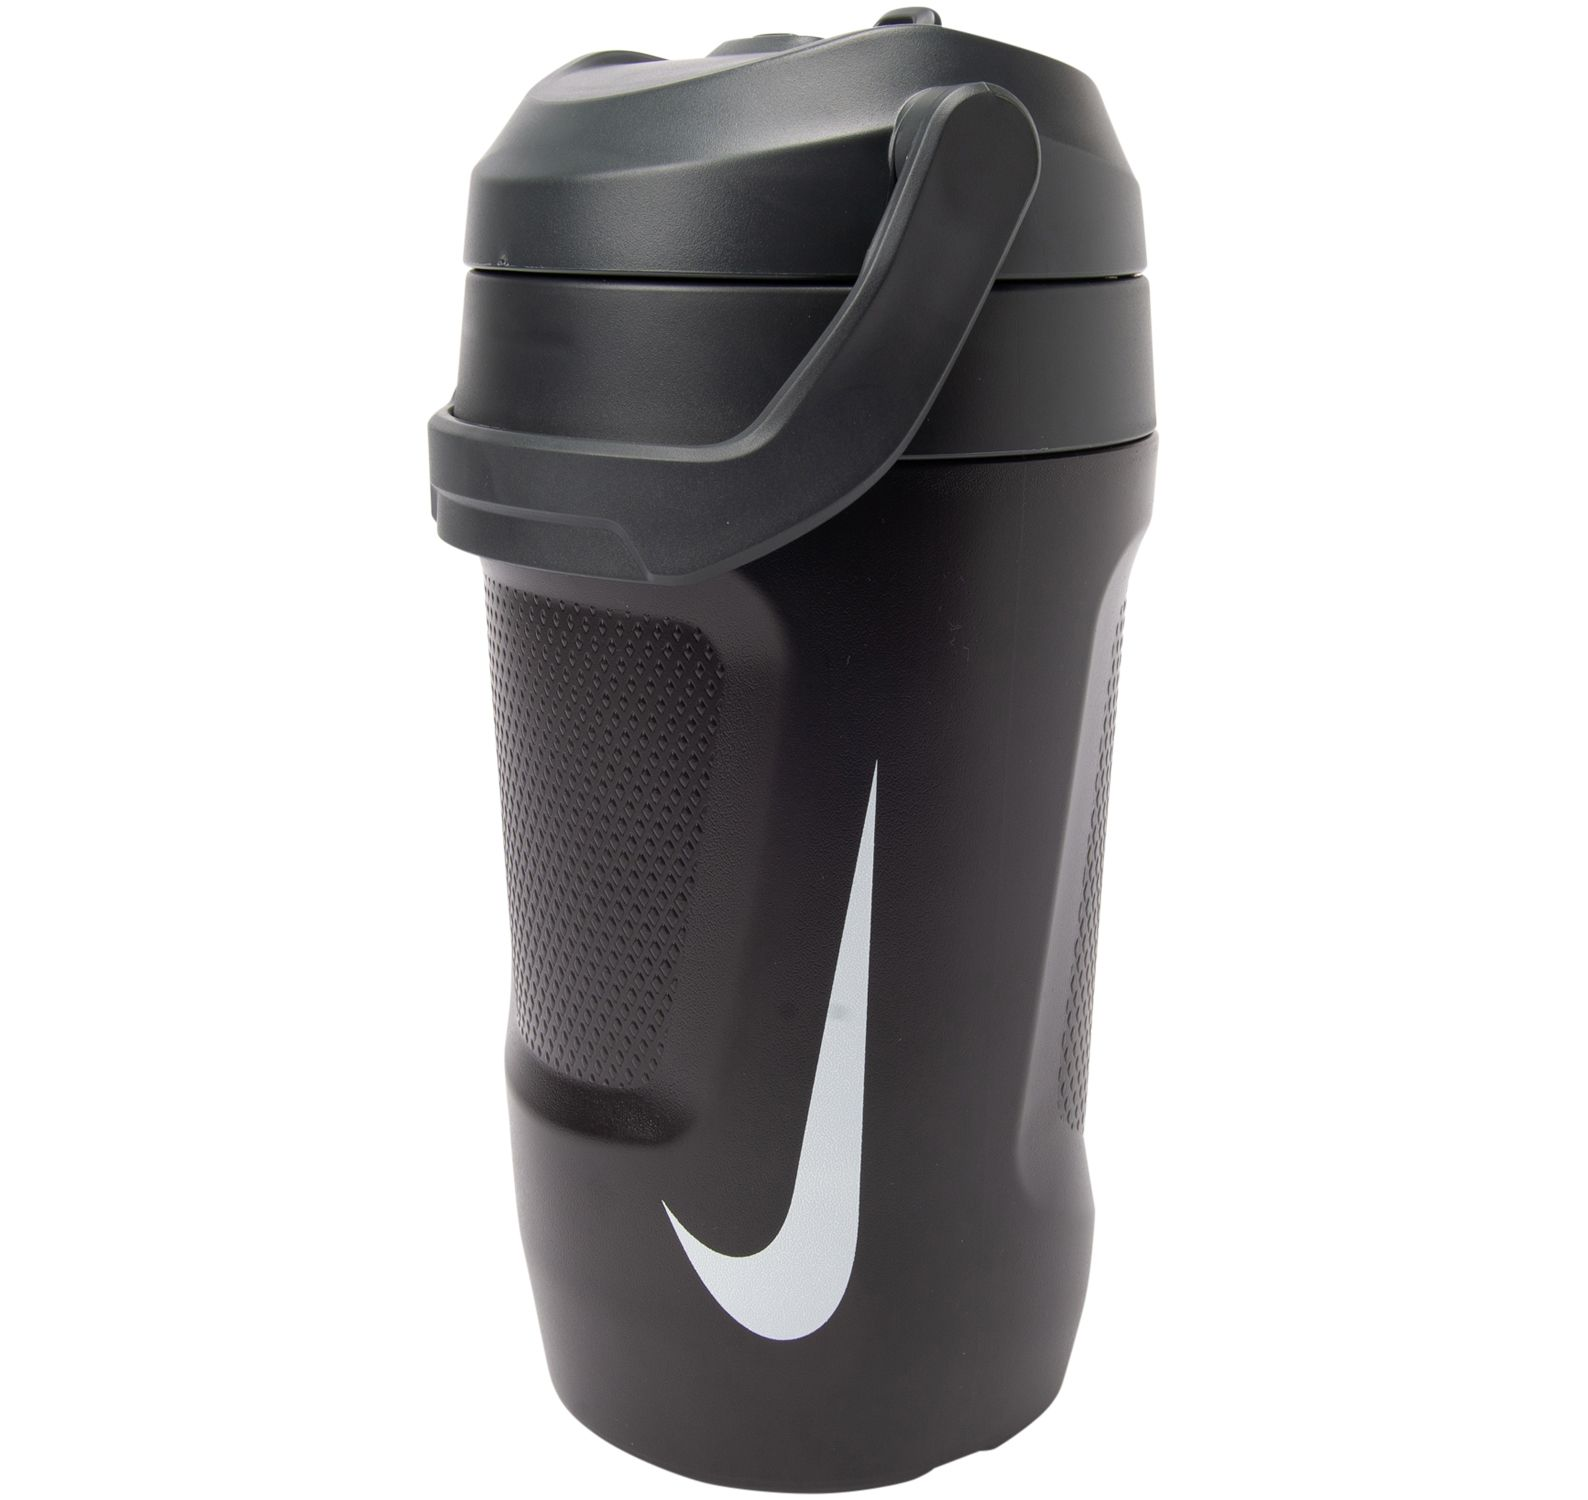 Nike Fuel Jug 64 Oz, Black/Anthracite/White, Onesize, Nike